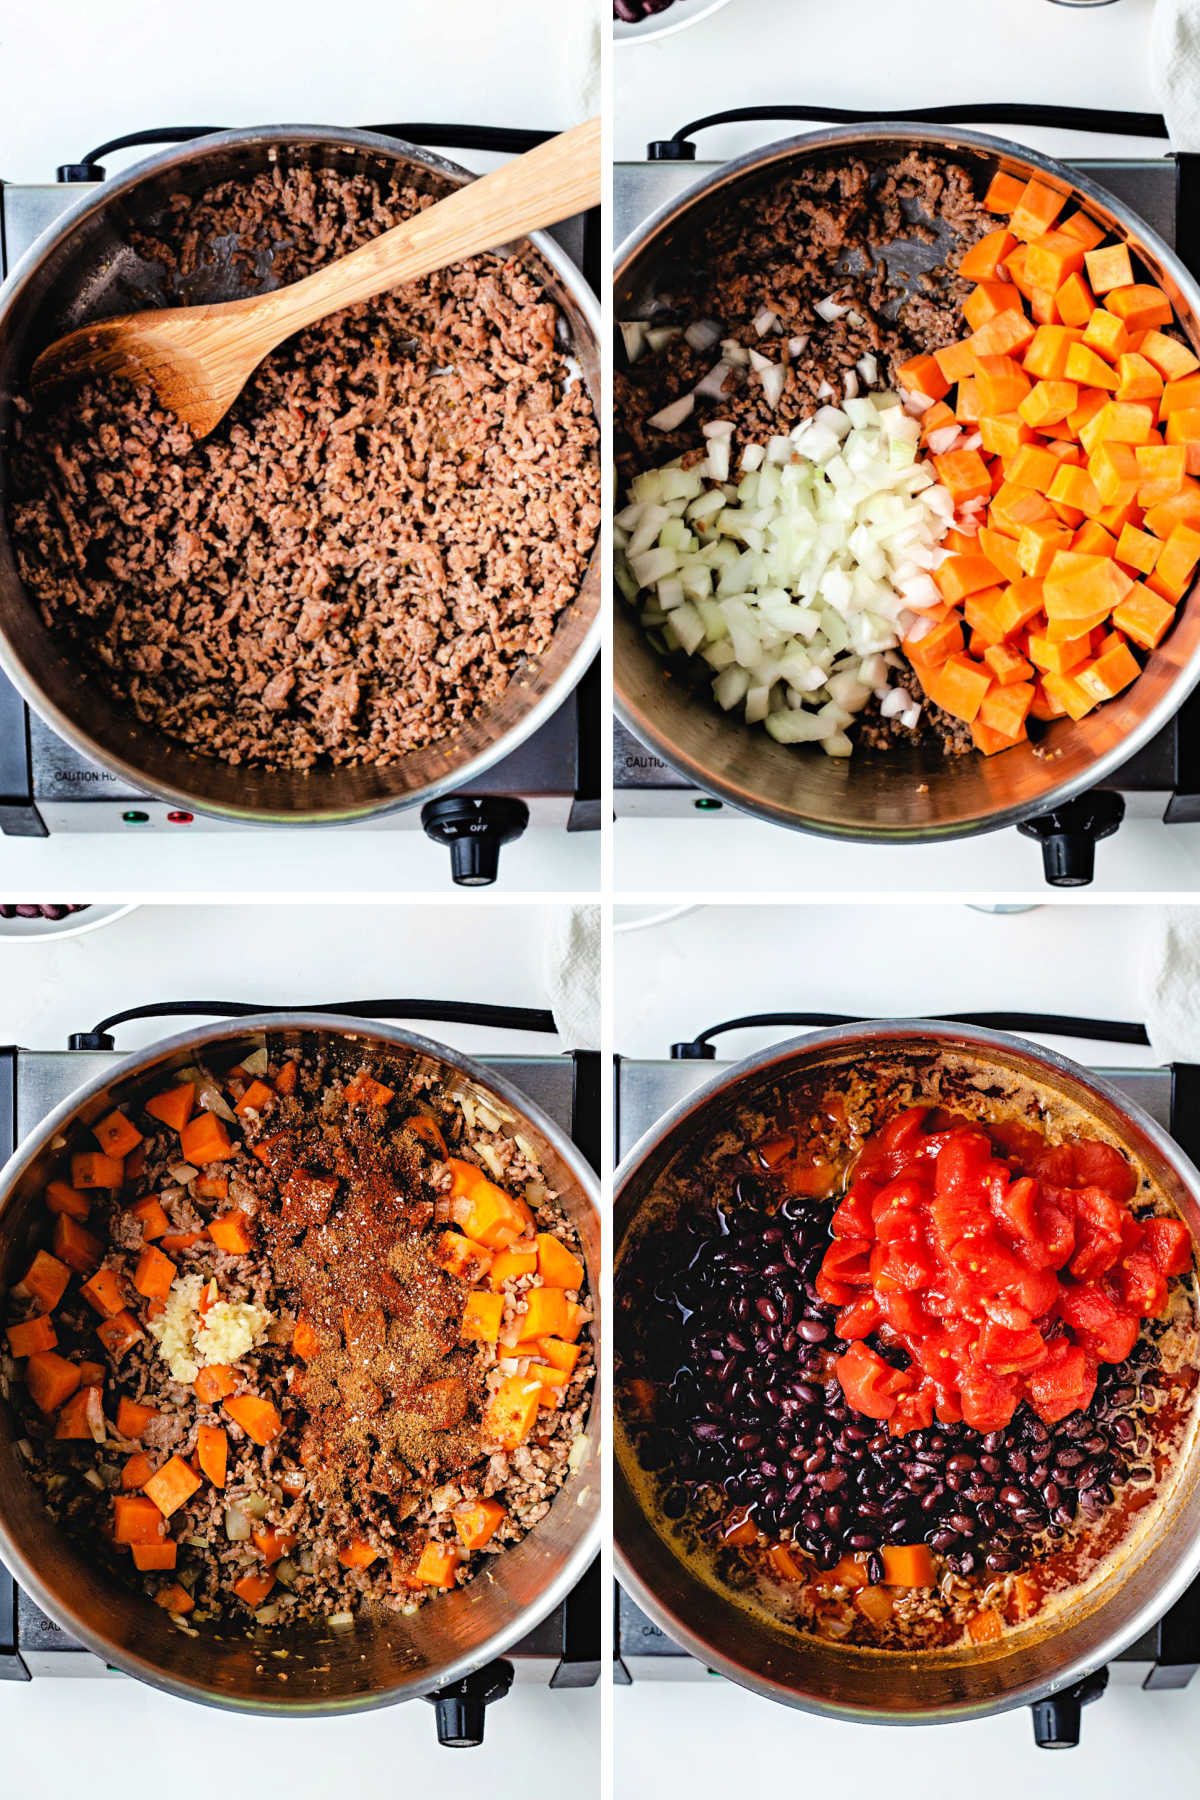 process steps for making black bean sweet potato chili: brown Italian sausage in a Dutch oven; add onions and diced sweet potatoes; stir in garlic and spices; add black beans and canned tomatoes.